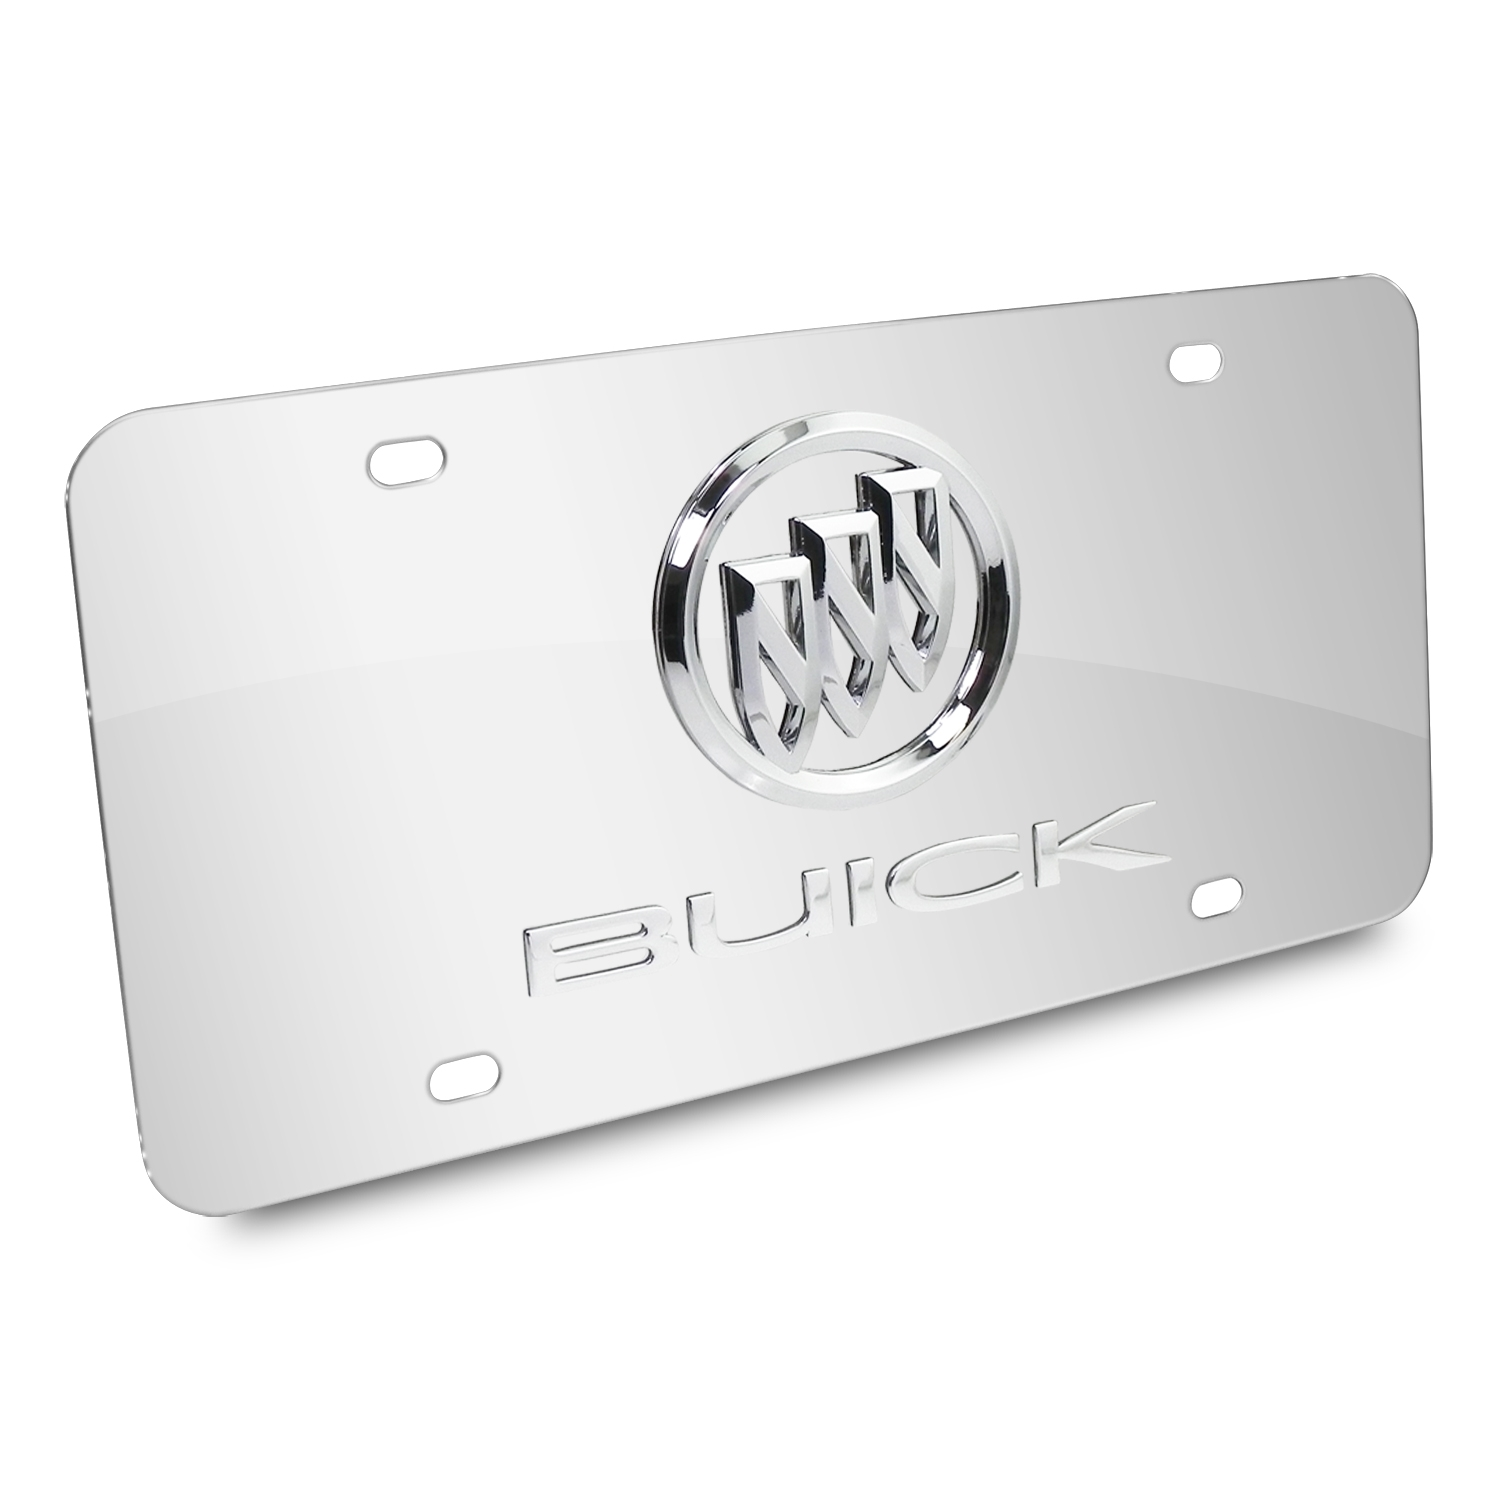 Buick Double 3D Logo Chrome Stainless Steel License Plate